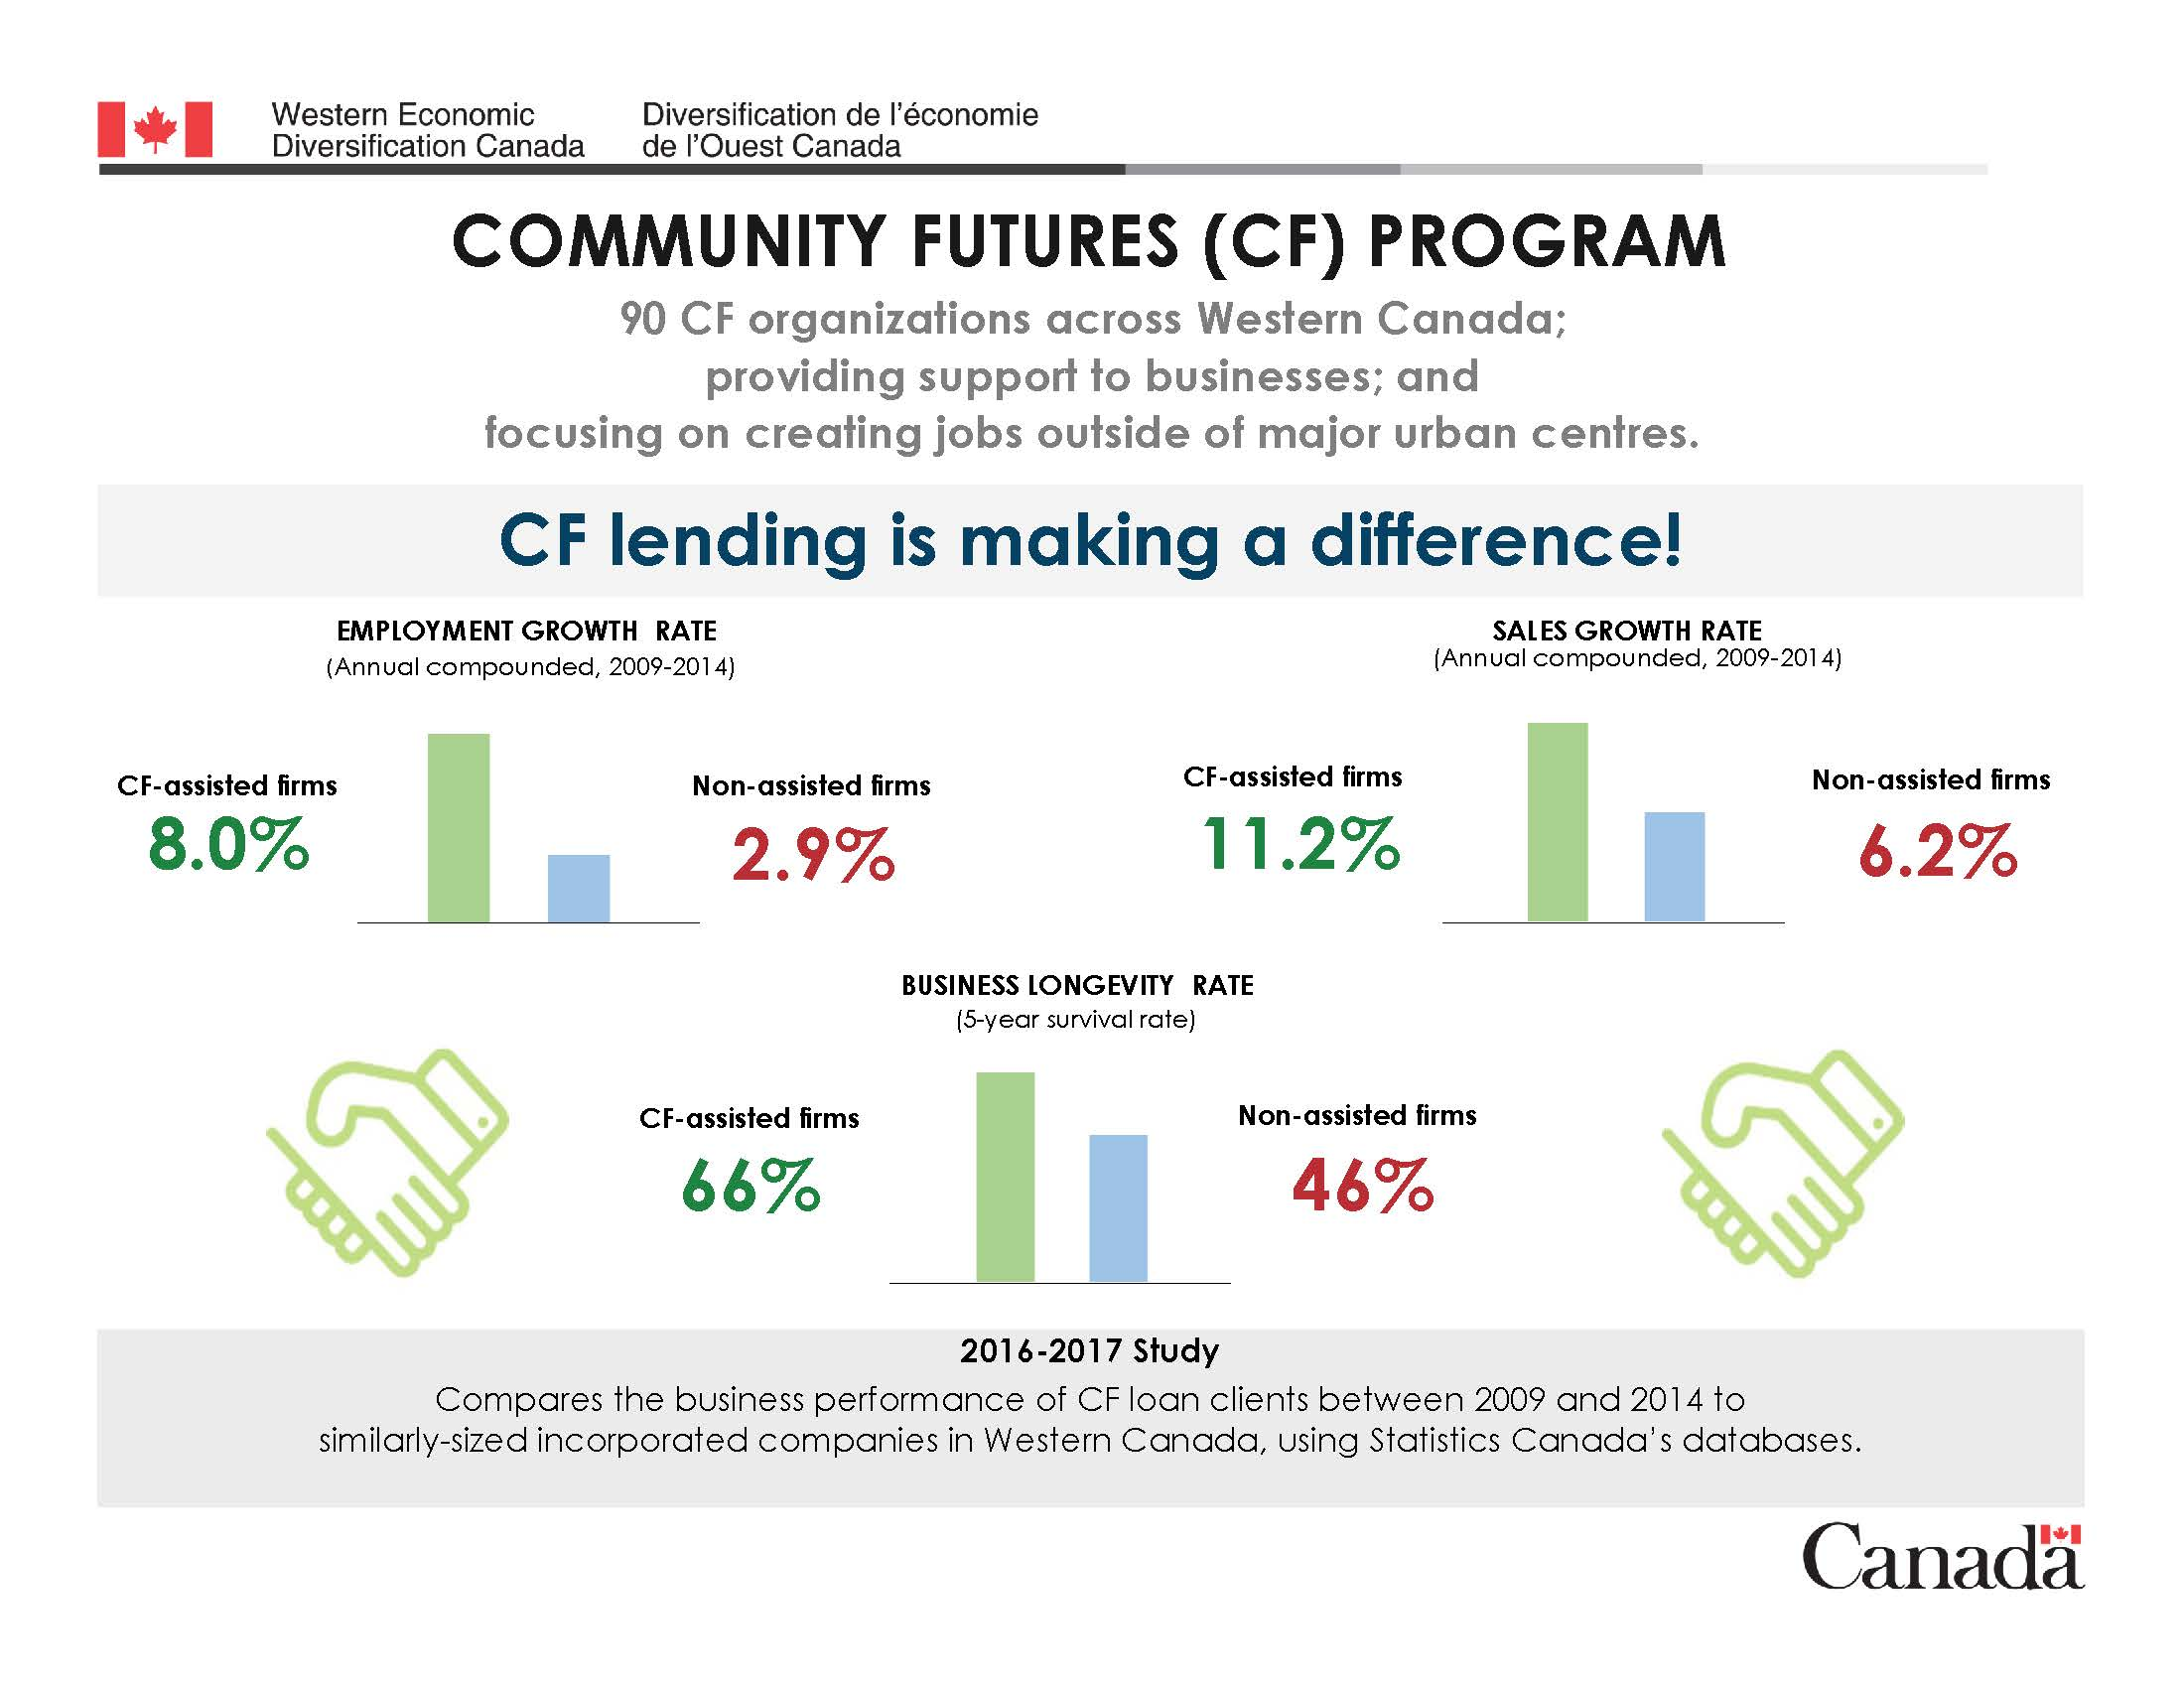 Our Financing Program is Making a Difference